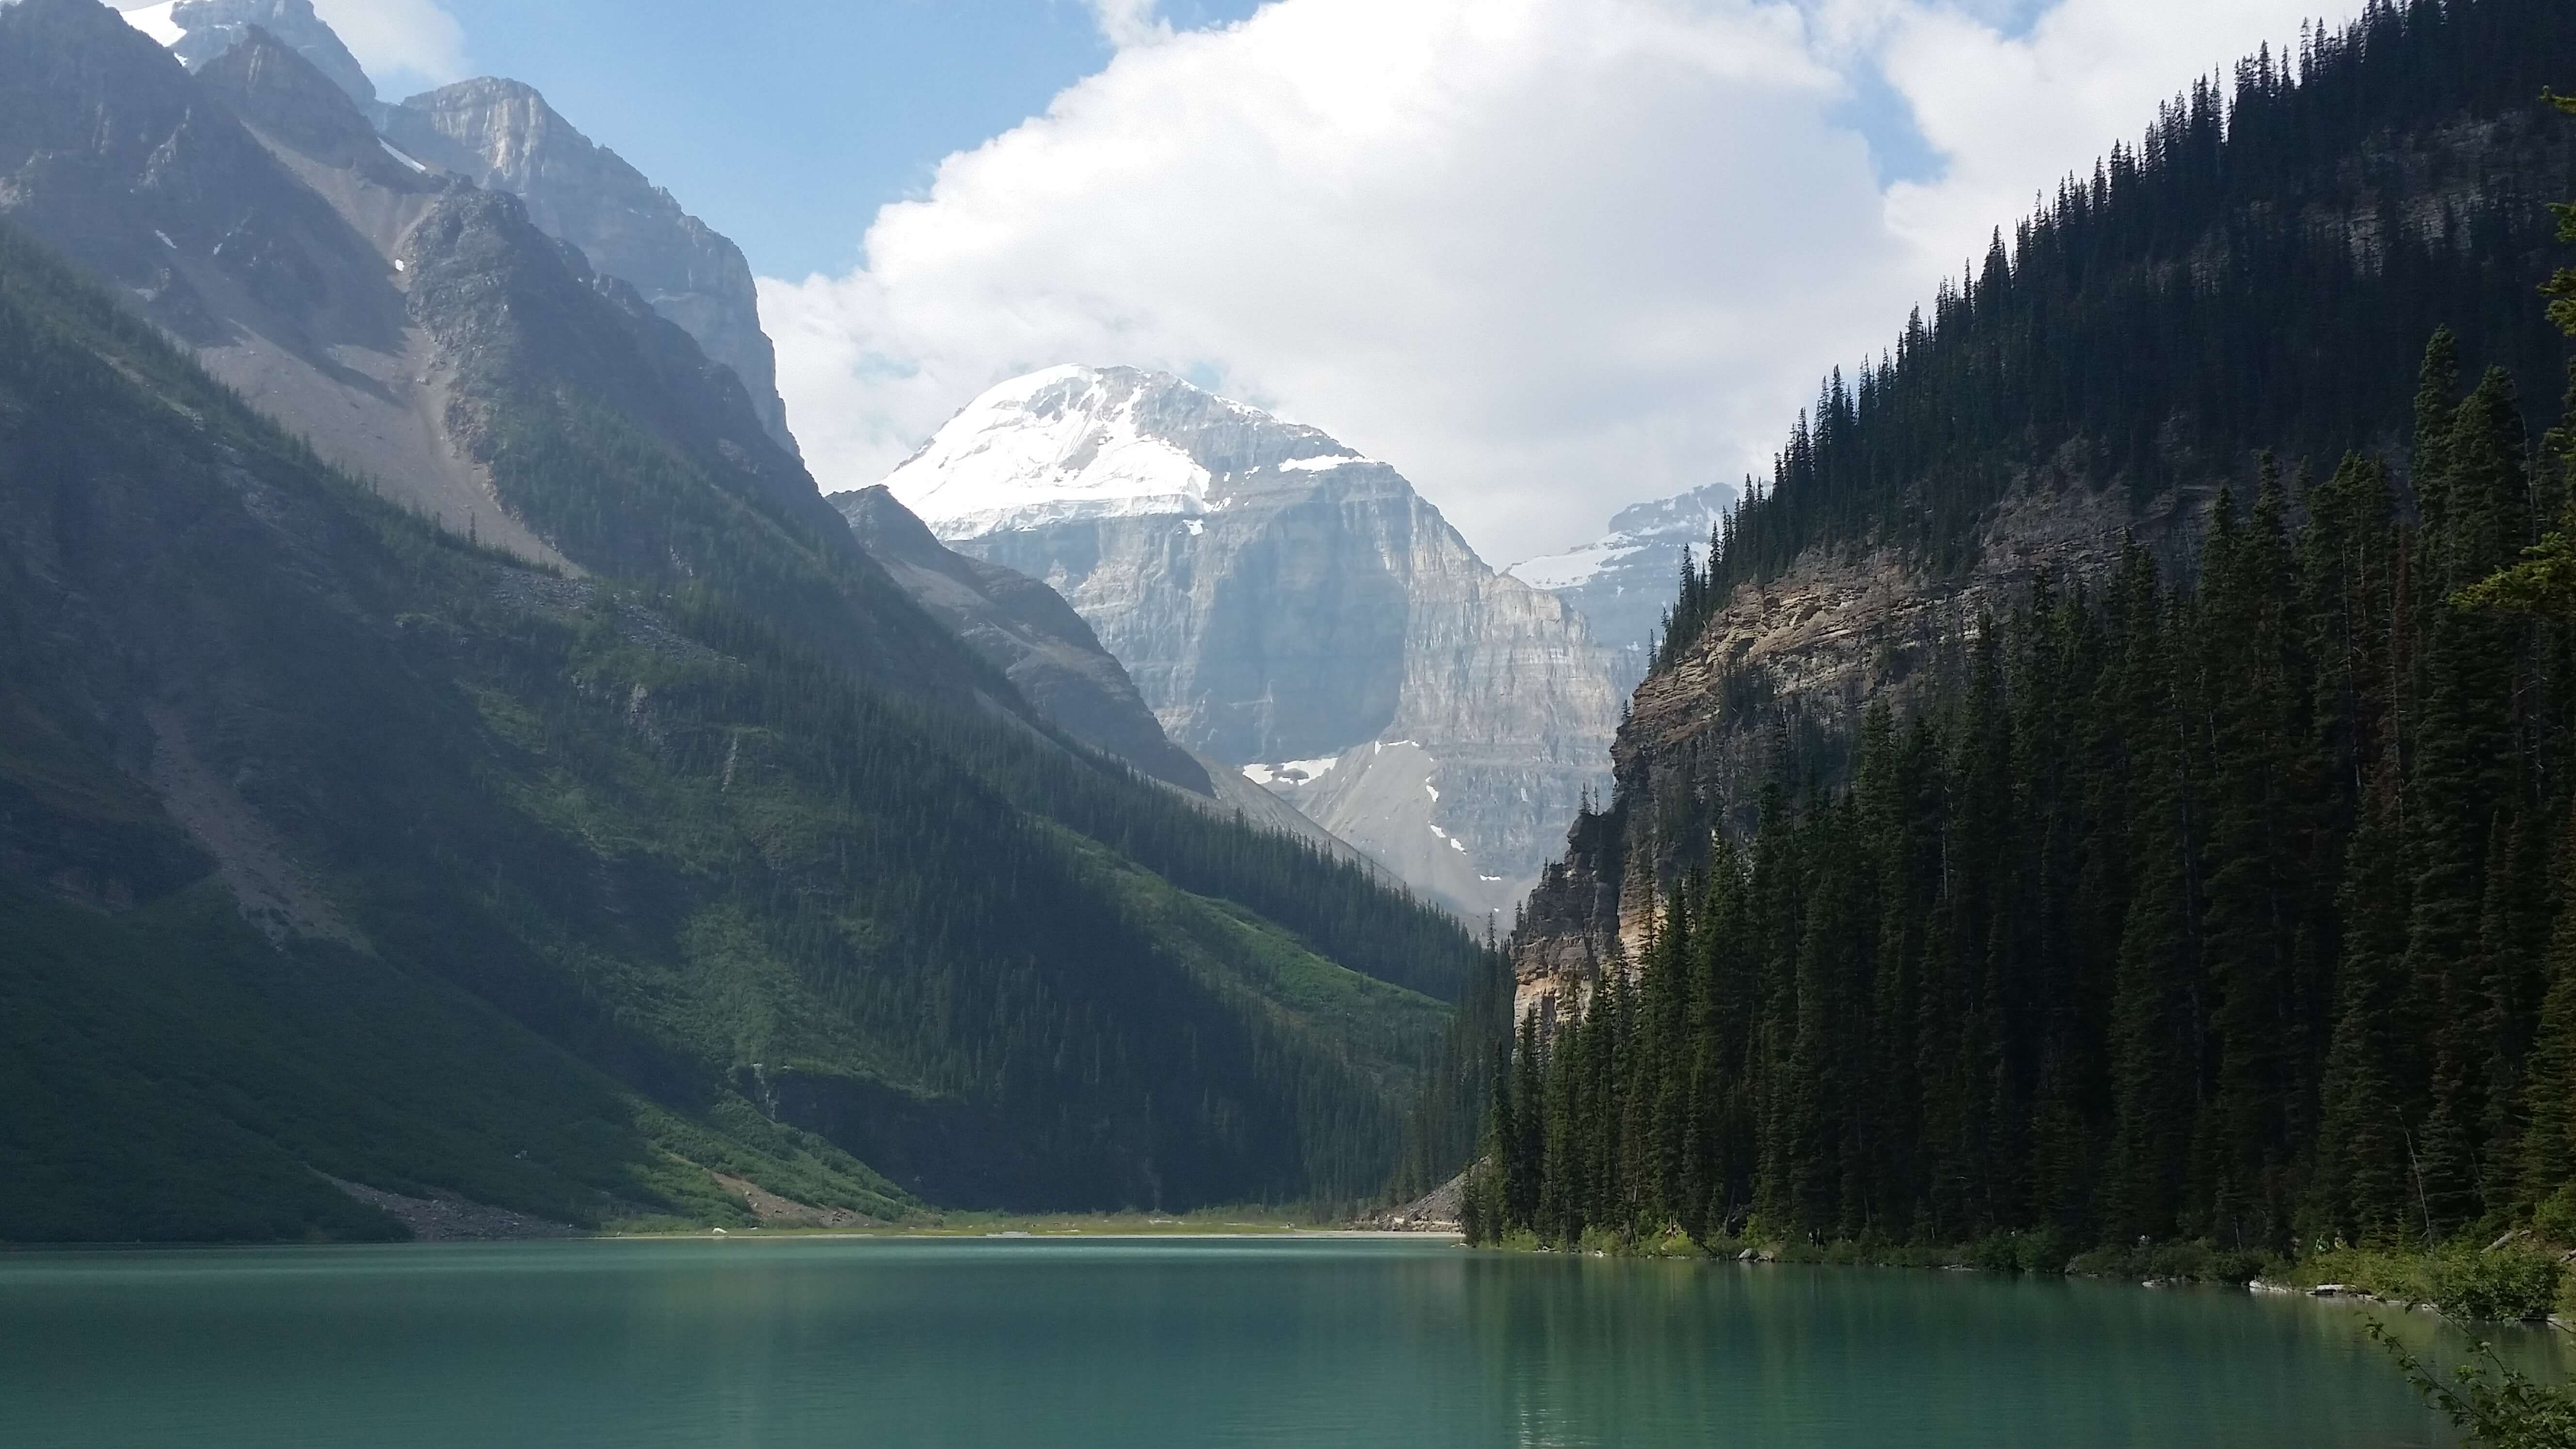 Lake Louise, Banff National Park, Alberta